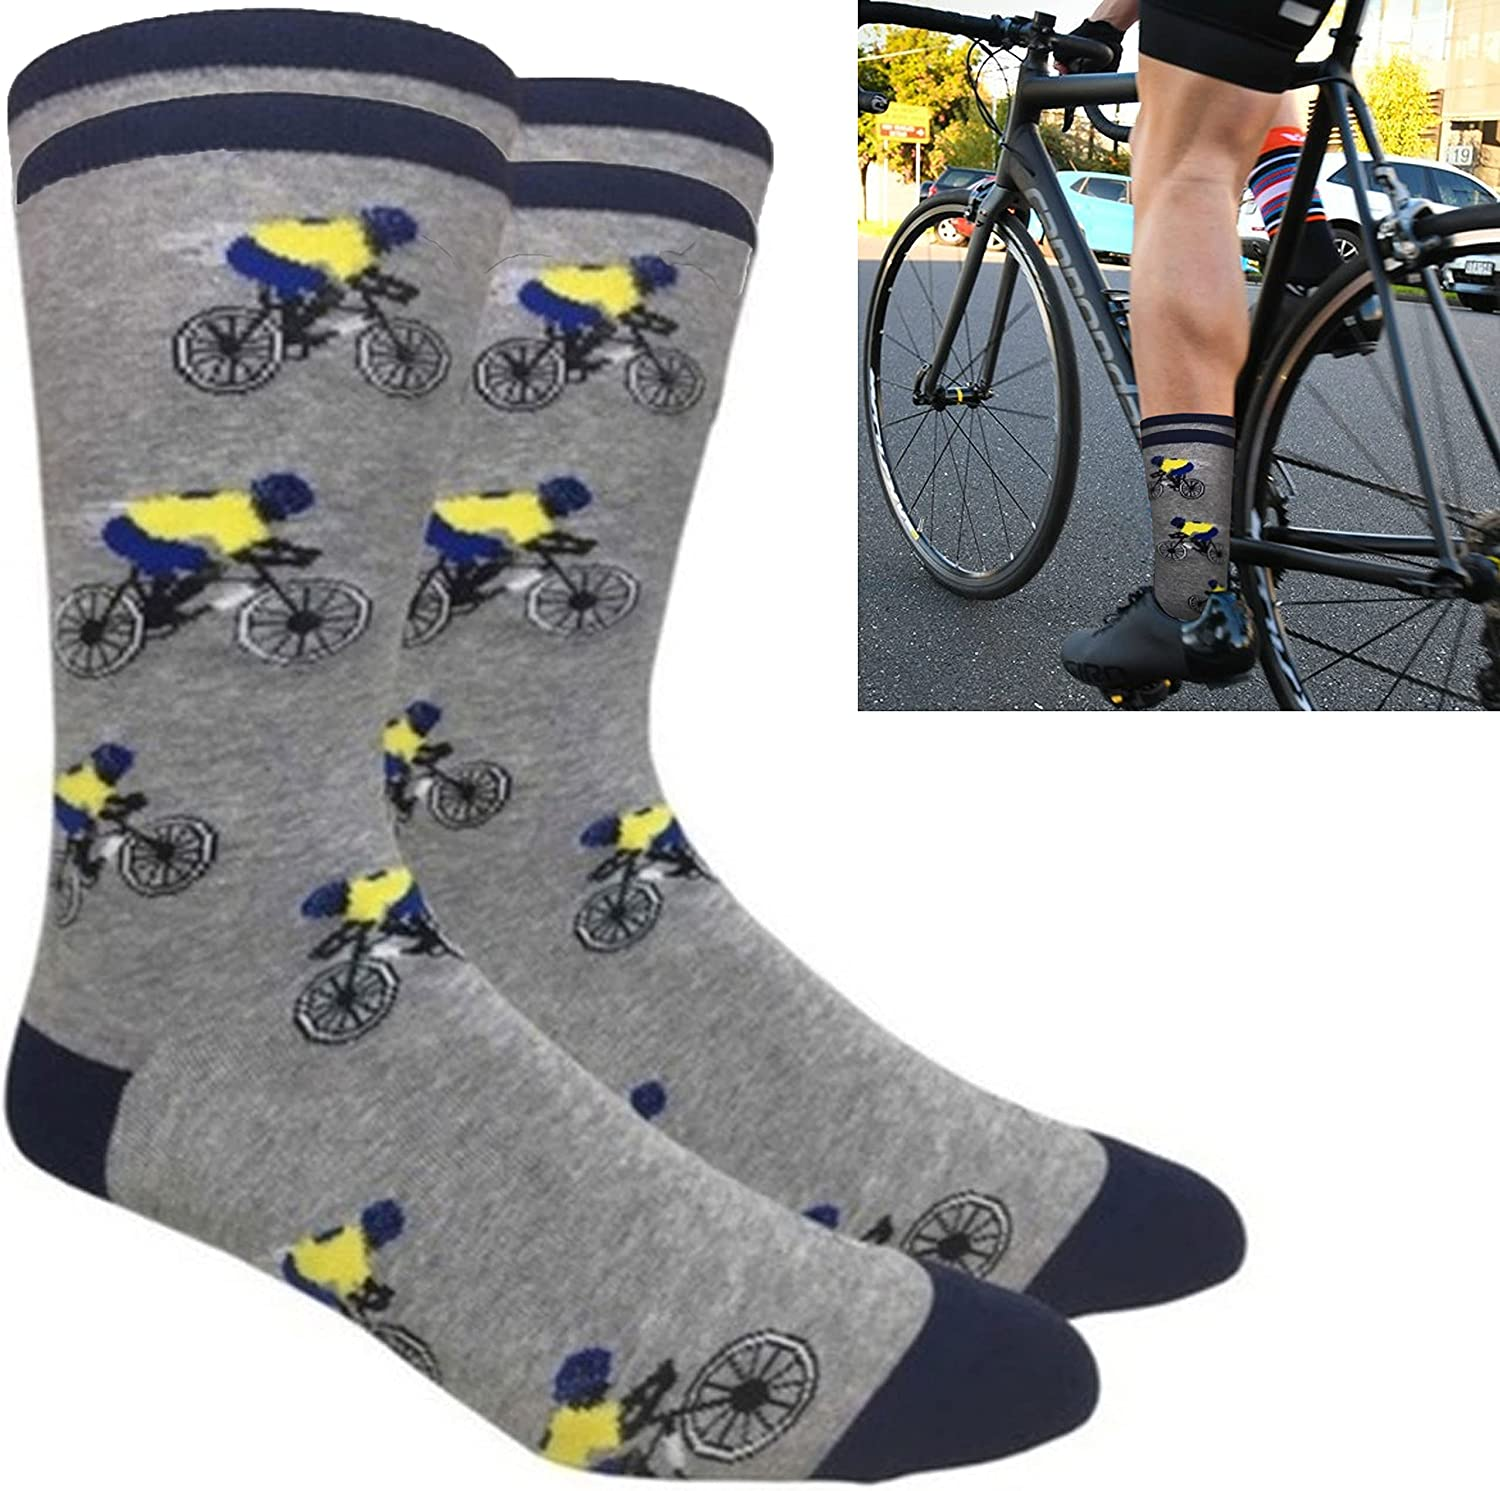 Bike Racer Crew Socks Cycling Gift Bicycle Unisex Casual Special sale item Mail order cheap Novelty